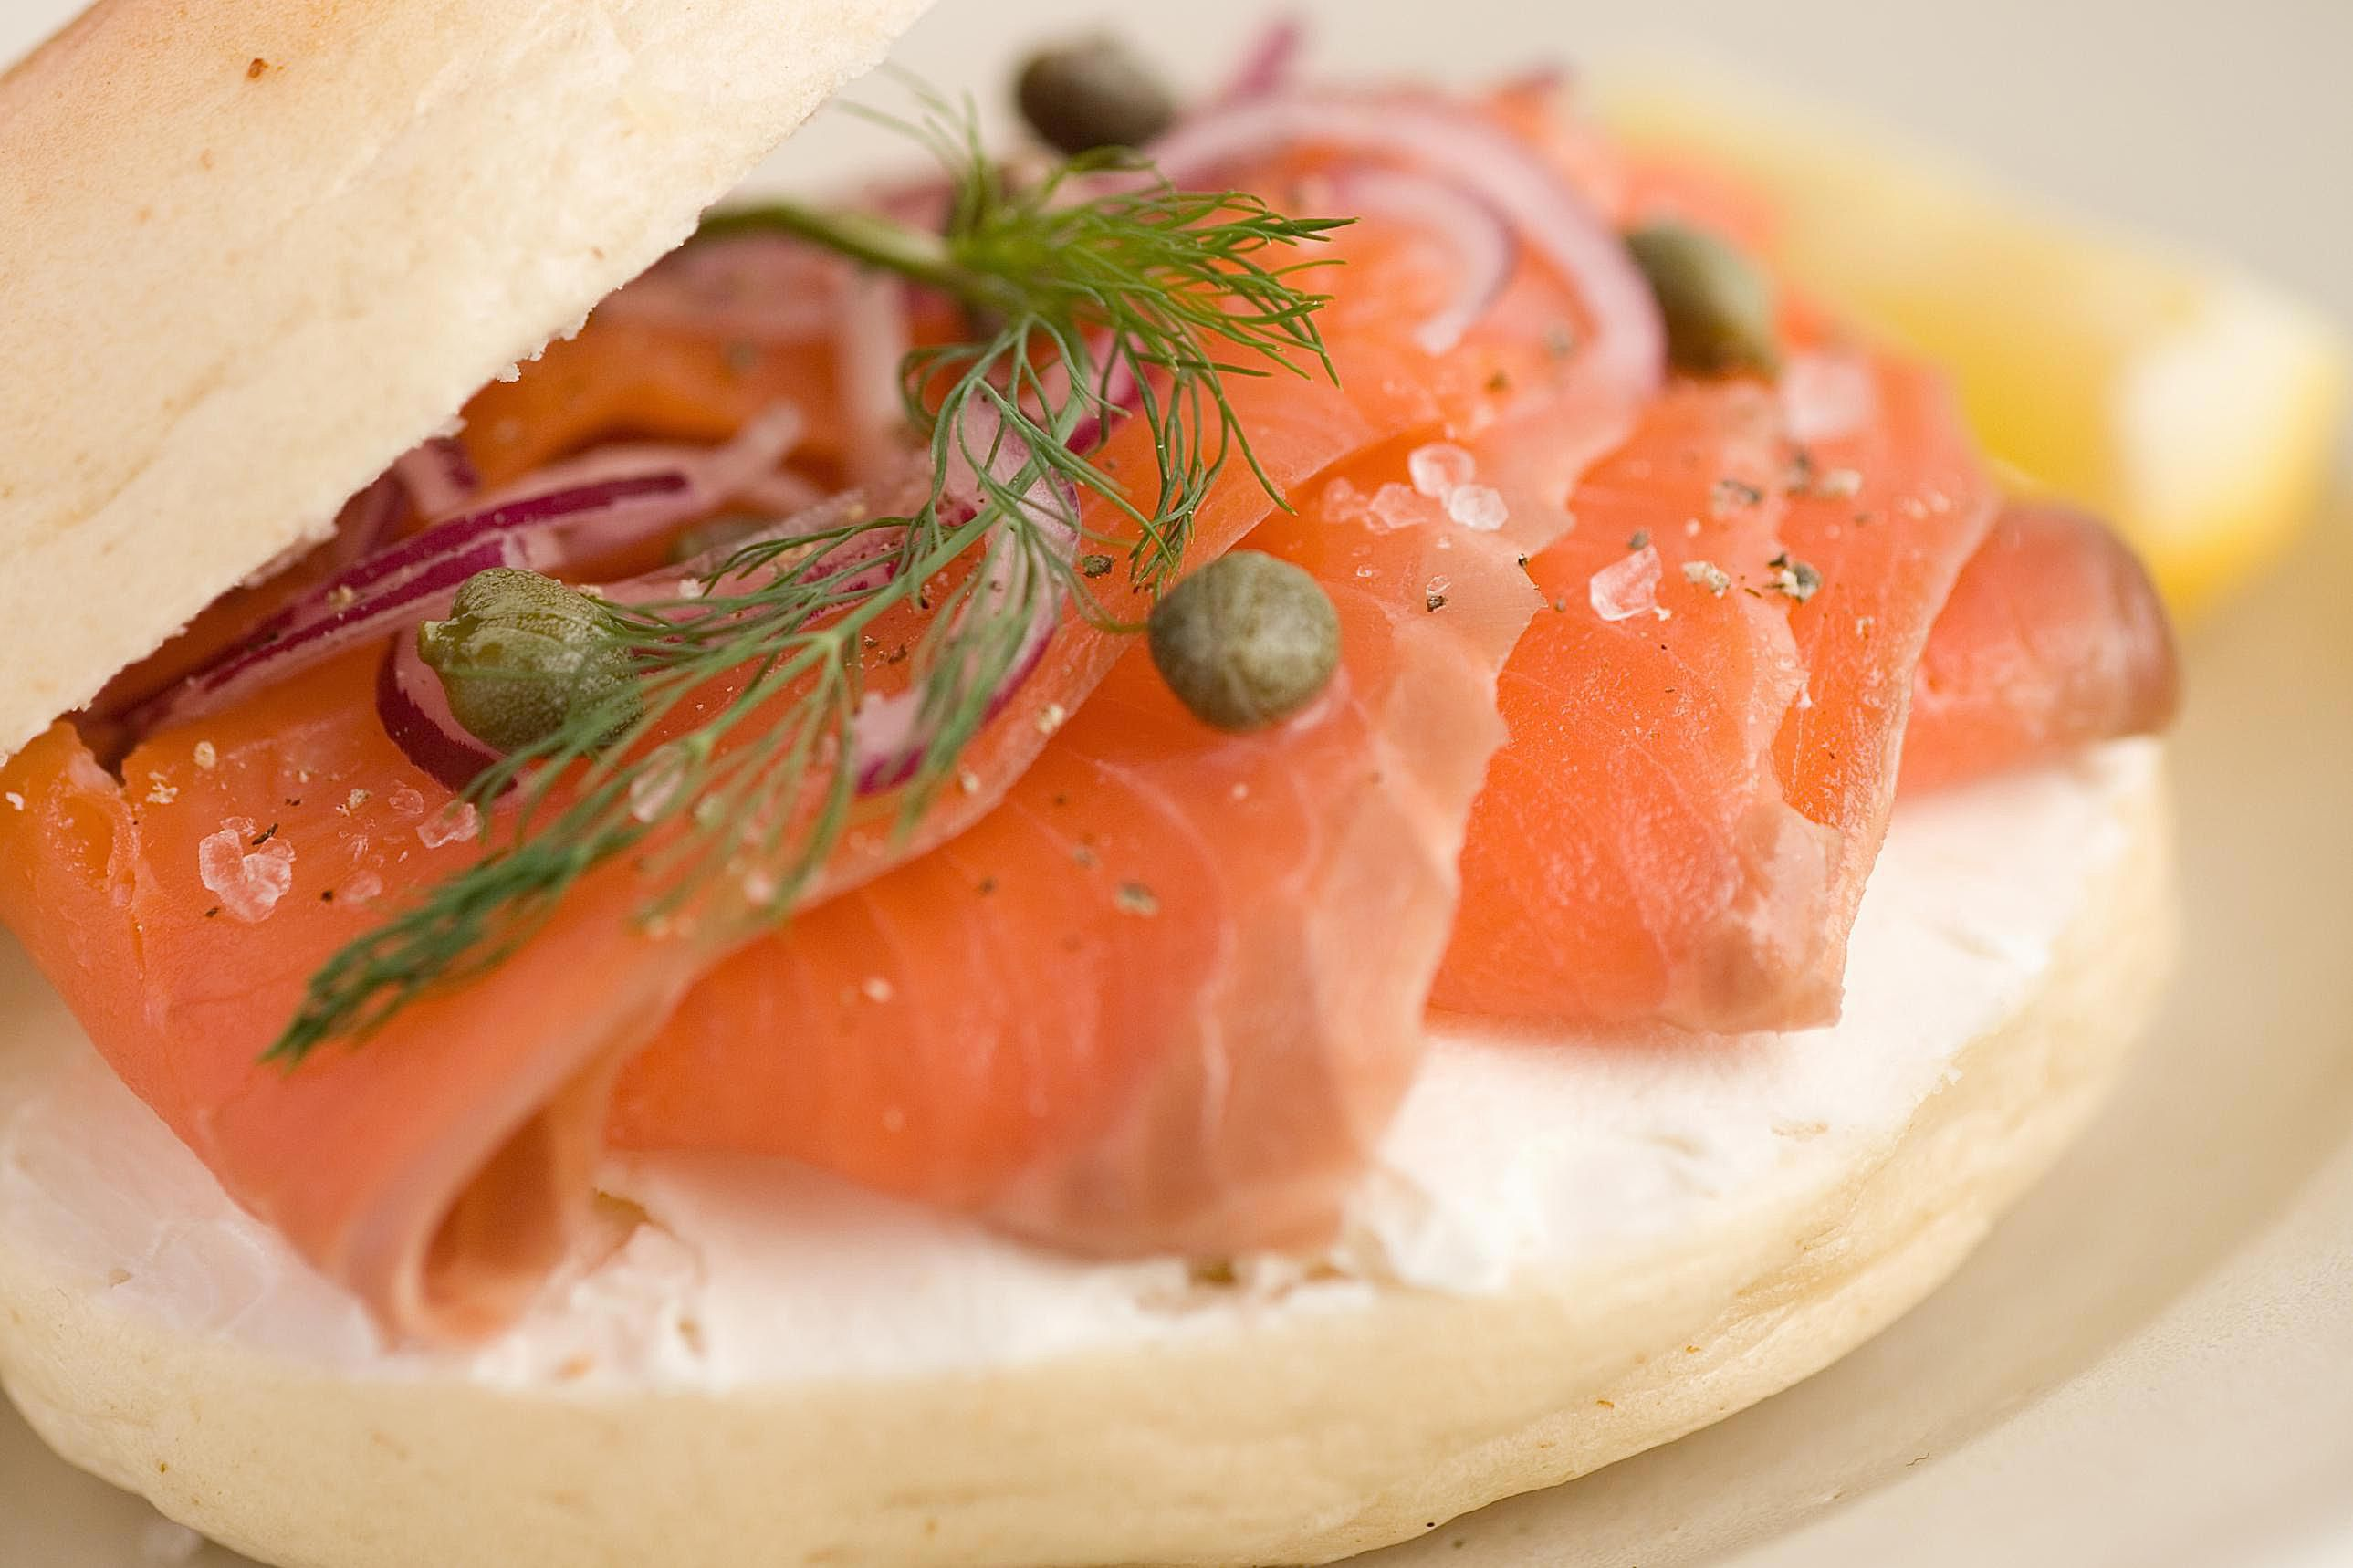 kitchen reno fifth wheel campers with bunkhouse and outdoor open-face smoked salmon bagel